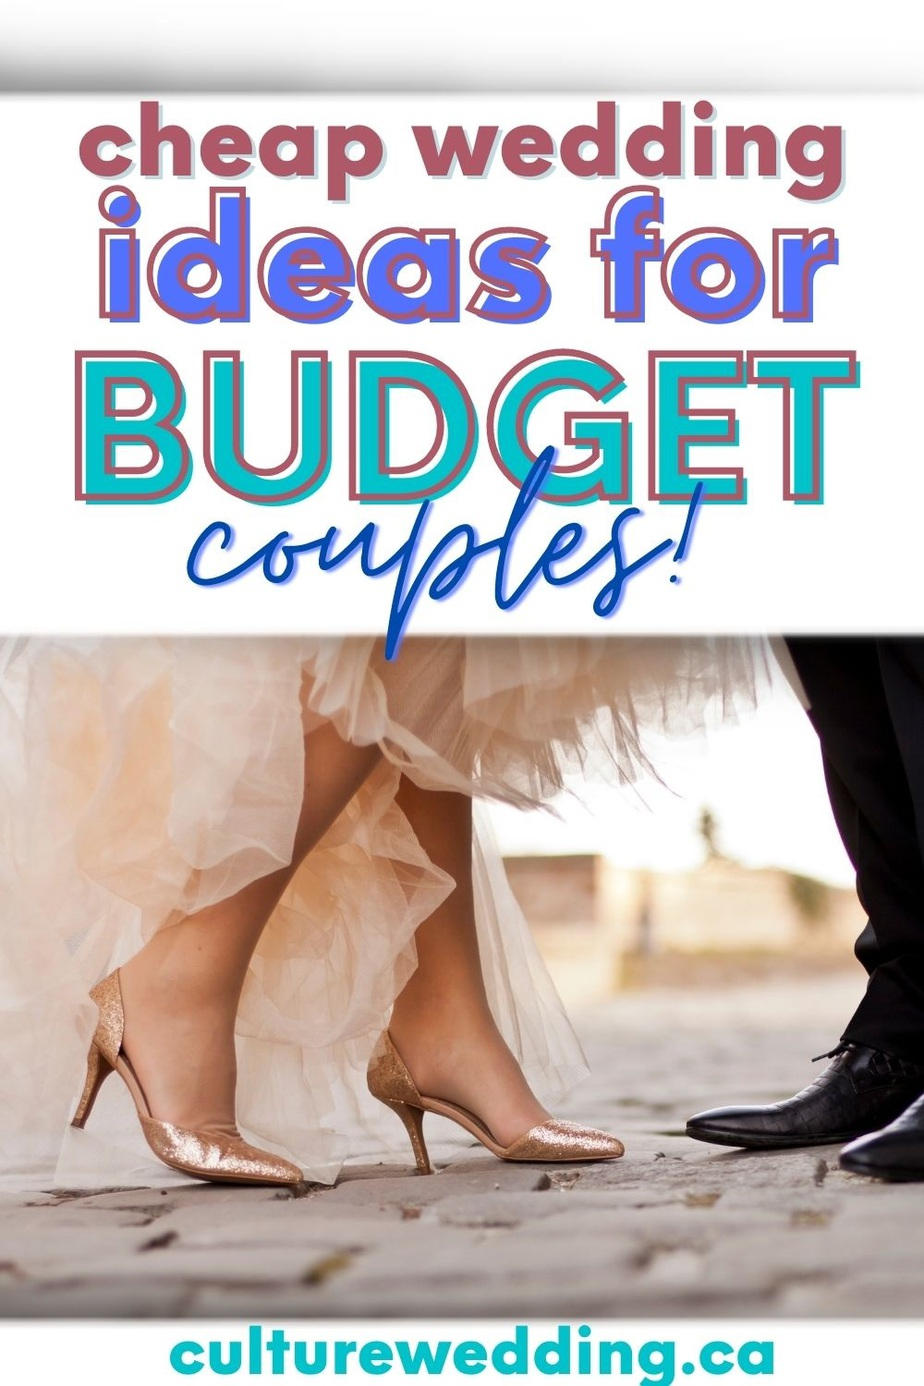 Unique And Cheap Wedding Ideas To Save Thousands! Weddings have many little costs that add up. The industry makes it so easy to overspend on creating the perfect day. Using these cheap wedding ideas is how to plan an affordable wedding on a budget. Creative, unique and cheap wedding tips and decorations ideas!